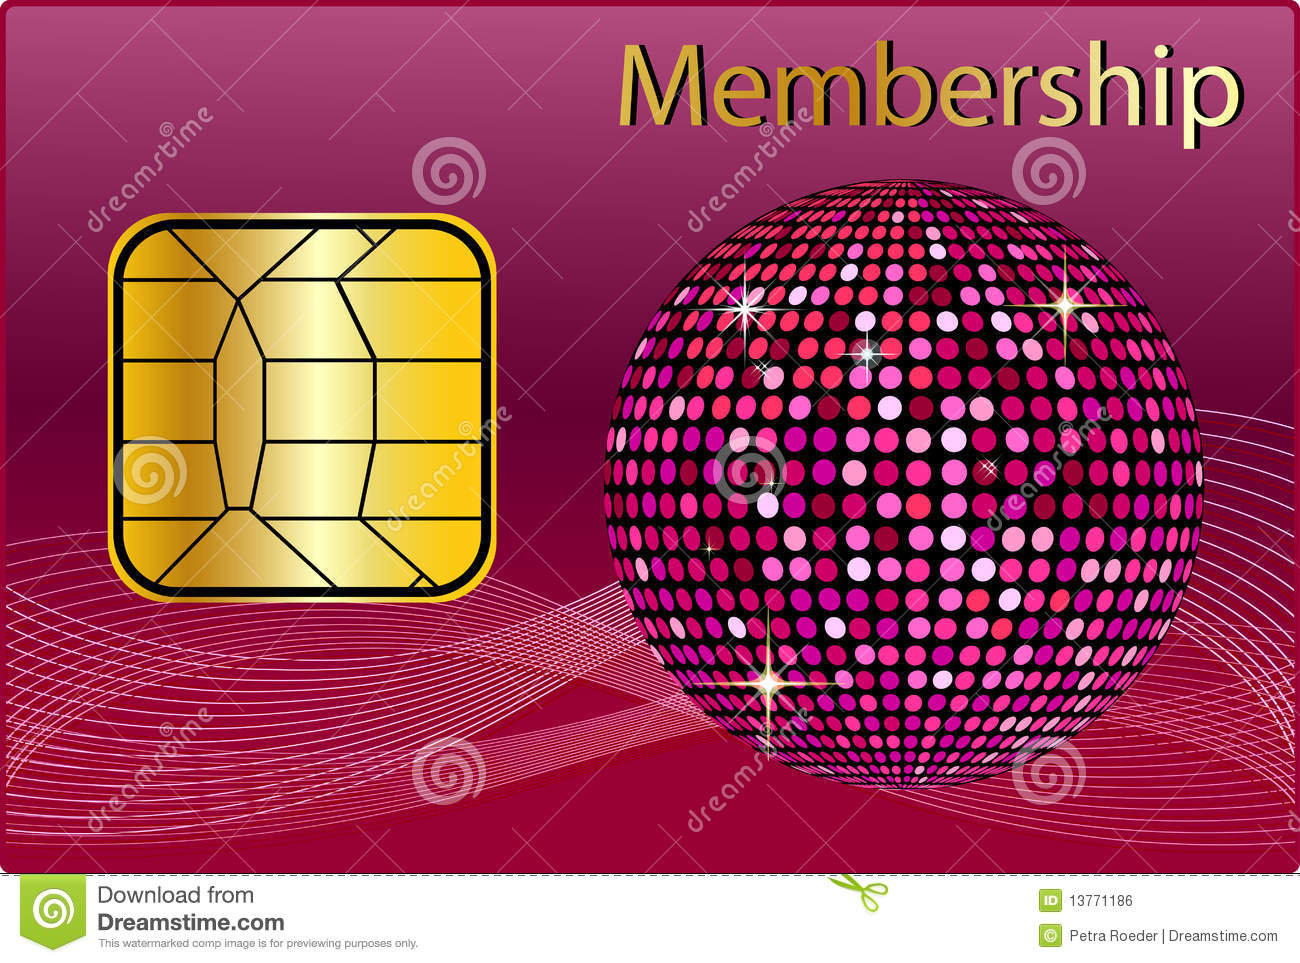 Elite Design Web Membership Card Royalty Free Stock Image Image 13771186